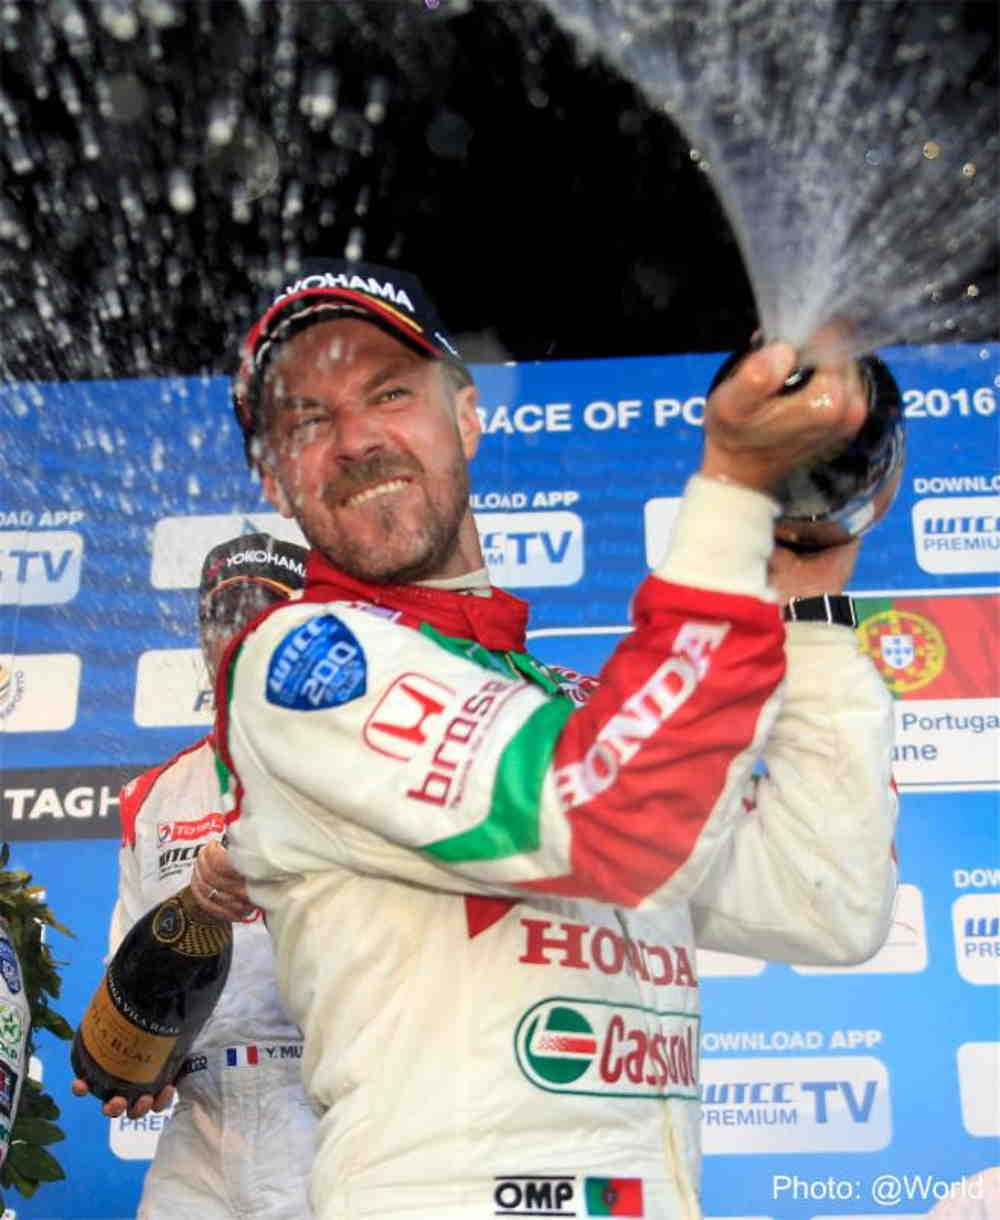 Tiago Monteiro in Vila Real spraying the champain